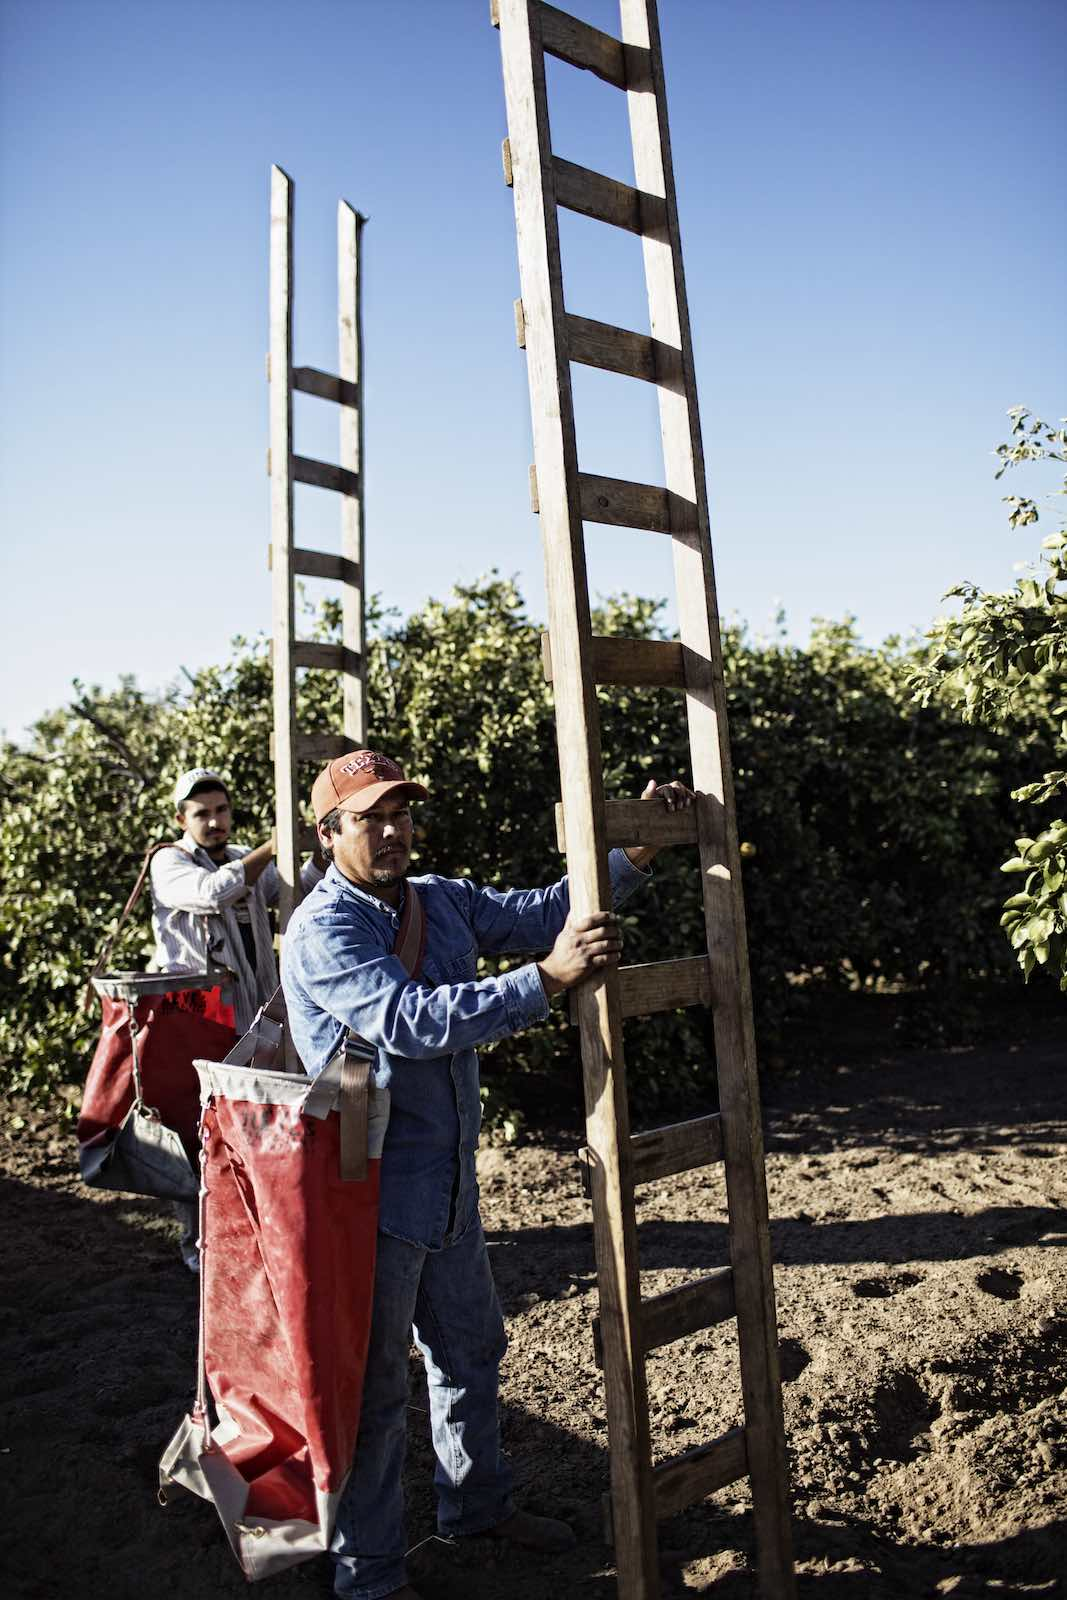 Jody Horton Photography - Grapefruit farmers hauling wood ladders through the orchard.